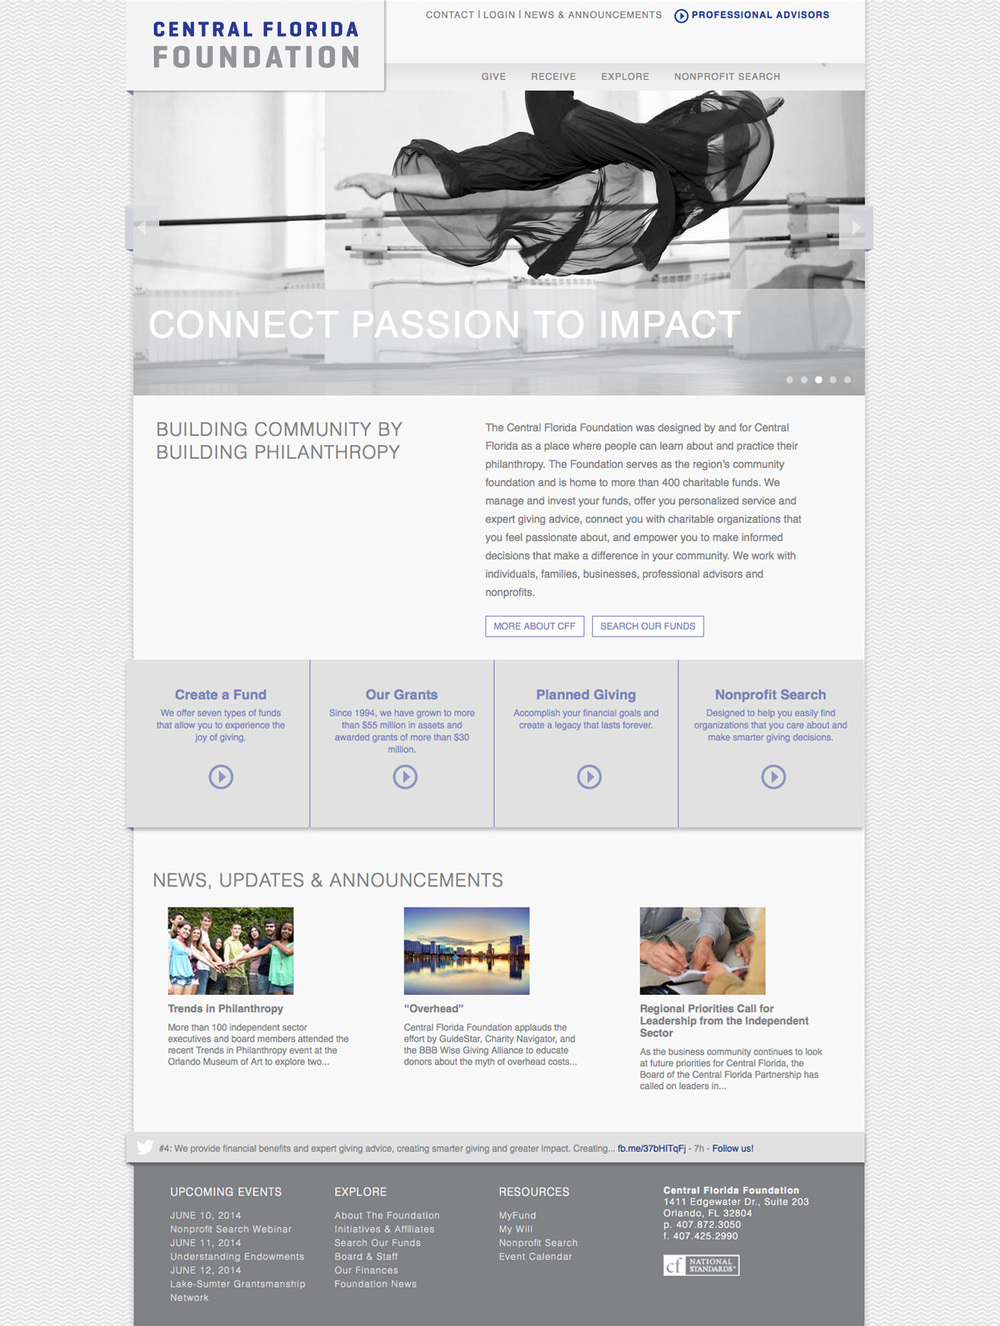 Central Florida Foundation Home Page